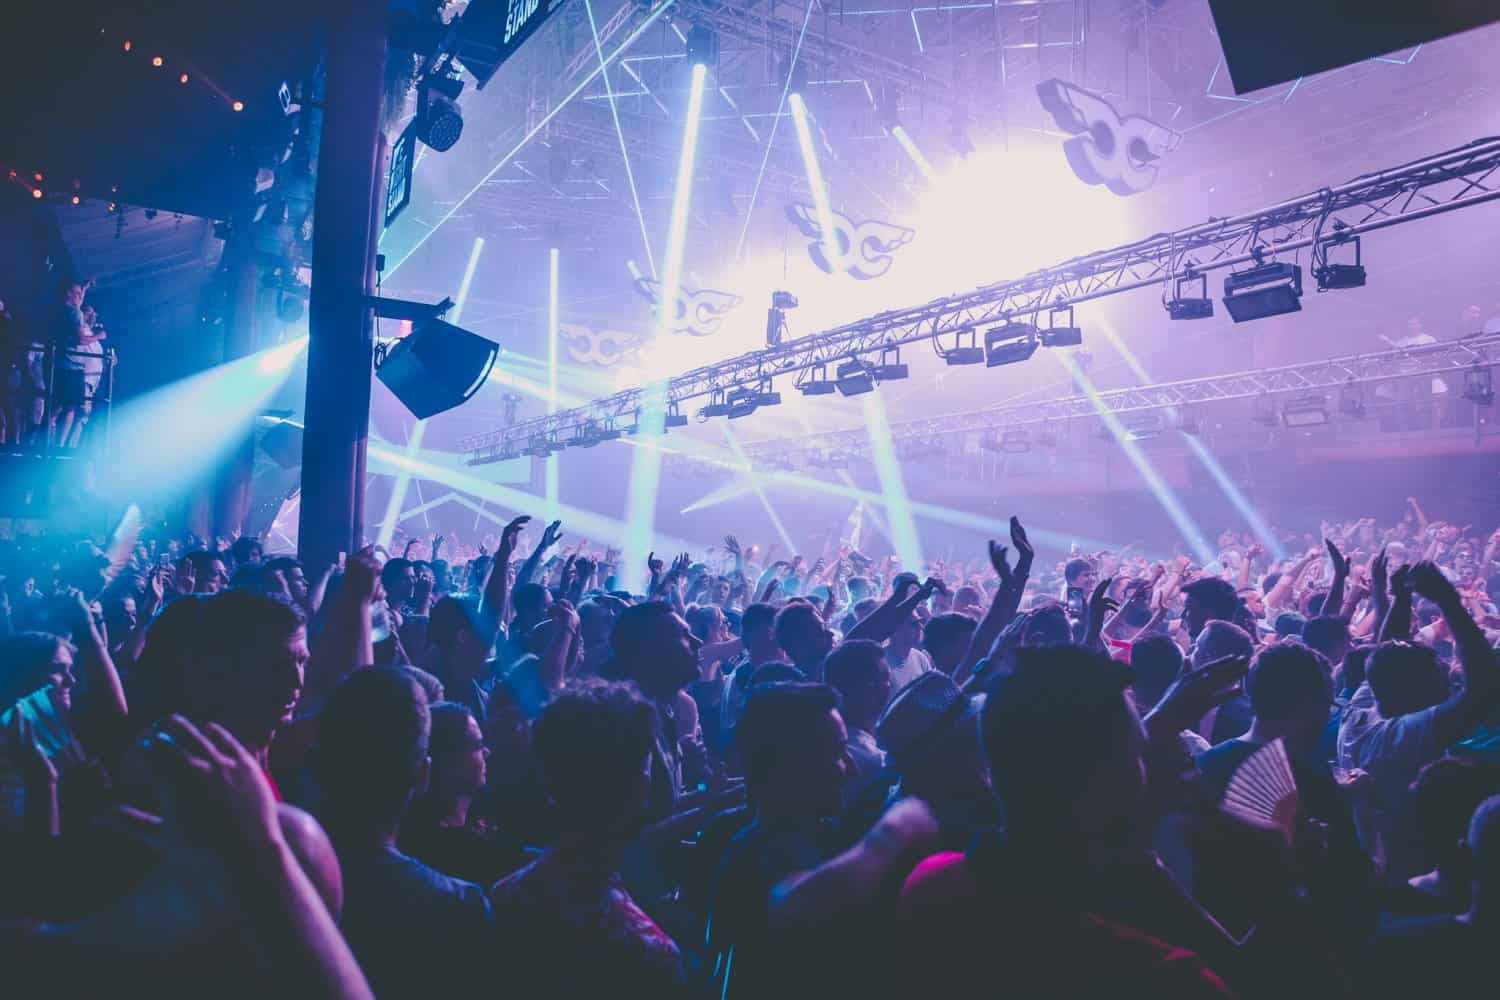 Amnesia Ibiza 2019 - Tickets, Events and Lineup 9